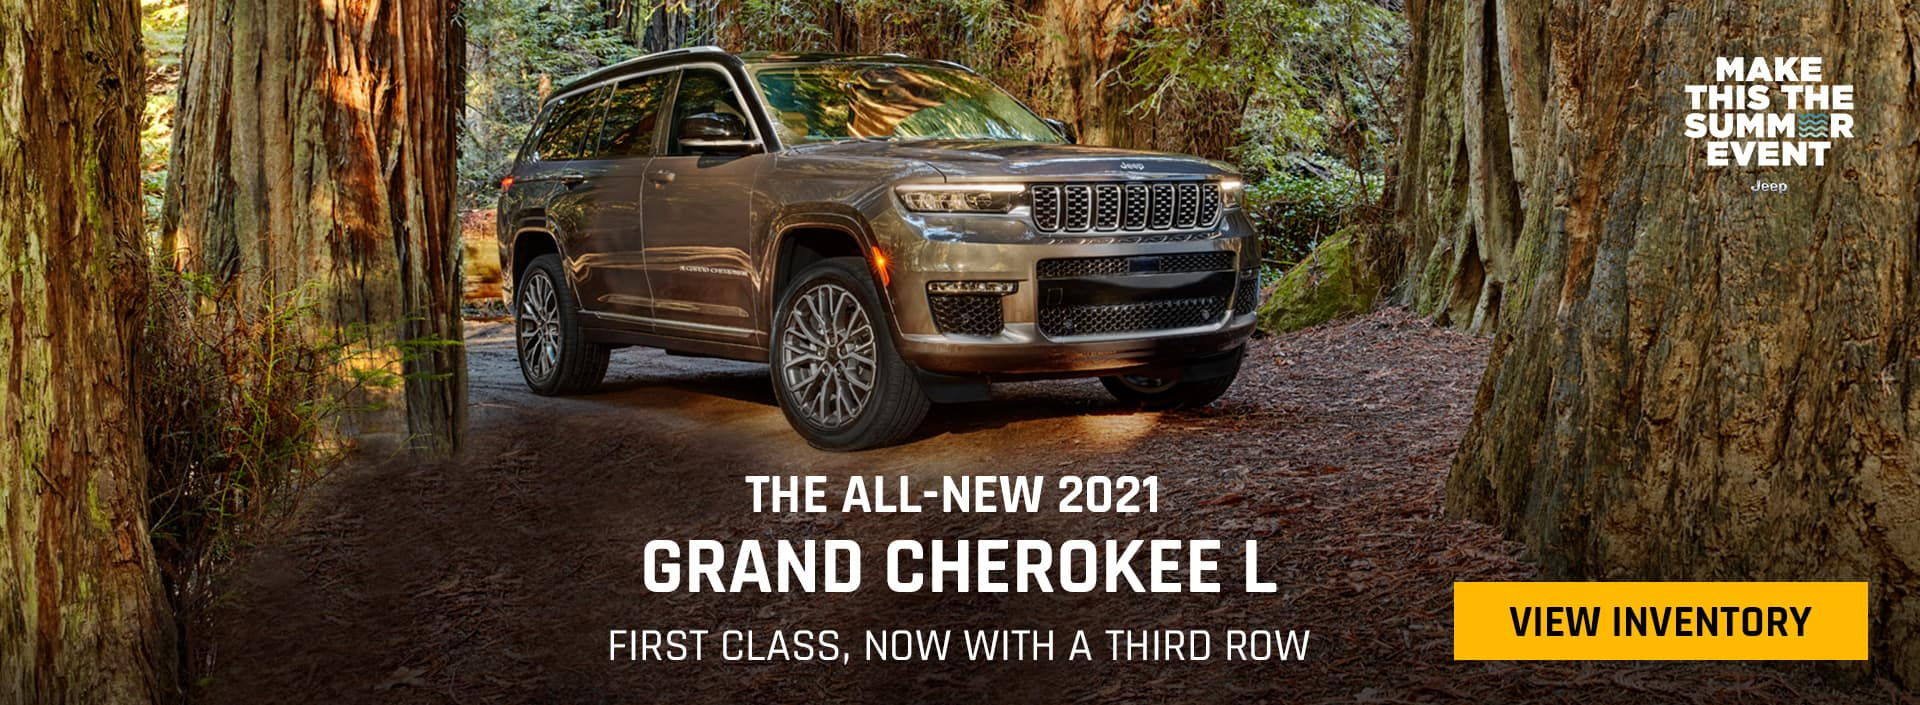 THE ALL-NEW 202 JEEP GRAND CHEROKEE L, FIRST CLASS, NOW WITH A THIRD ROW